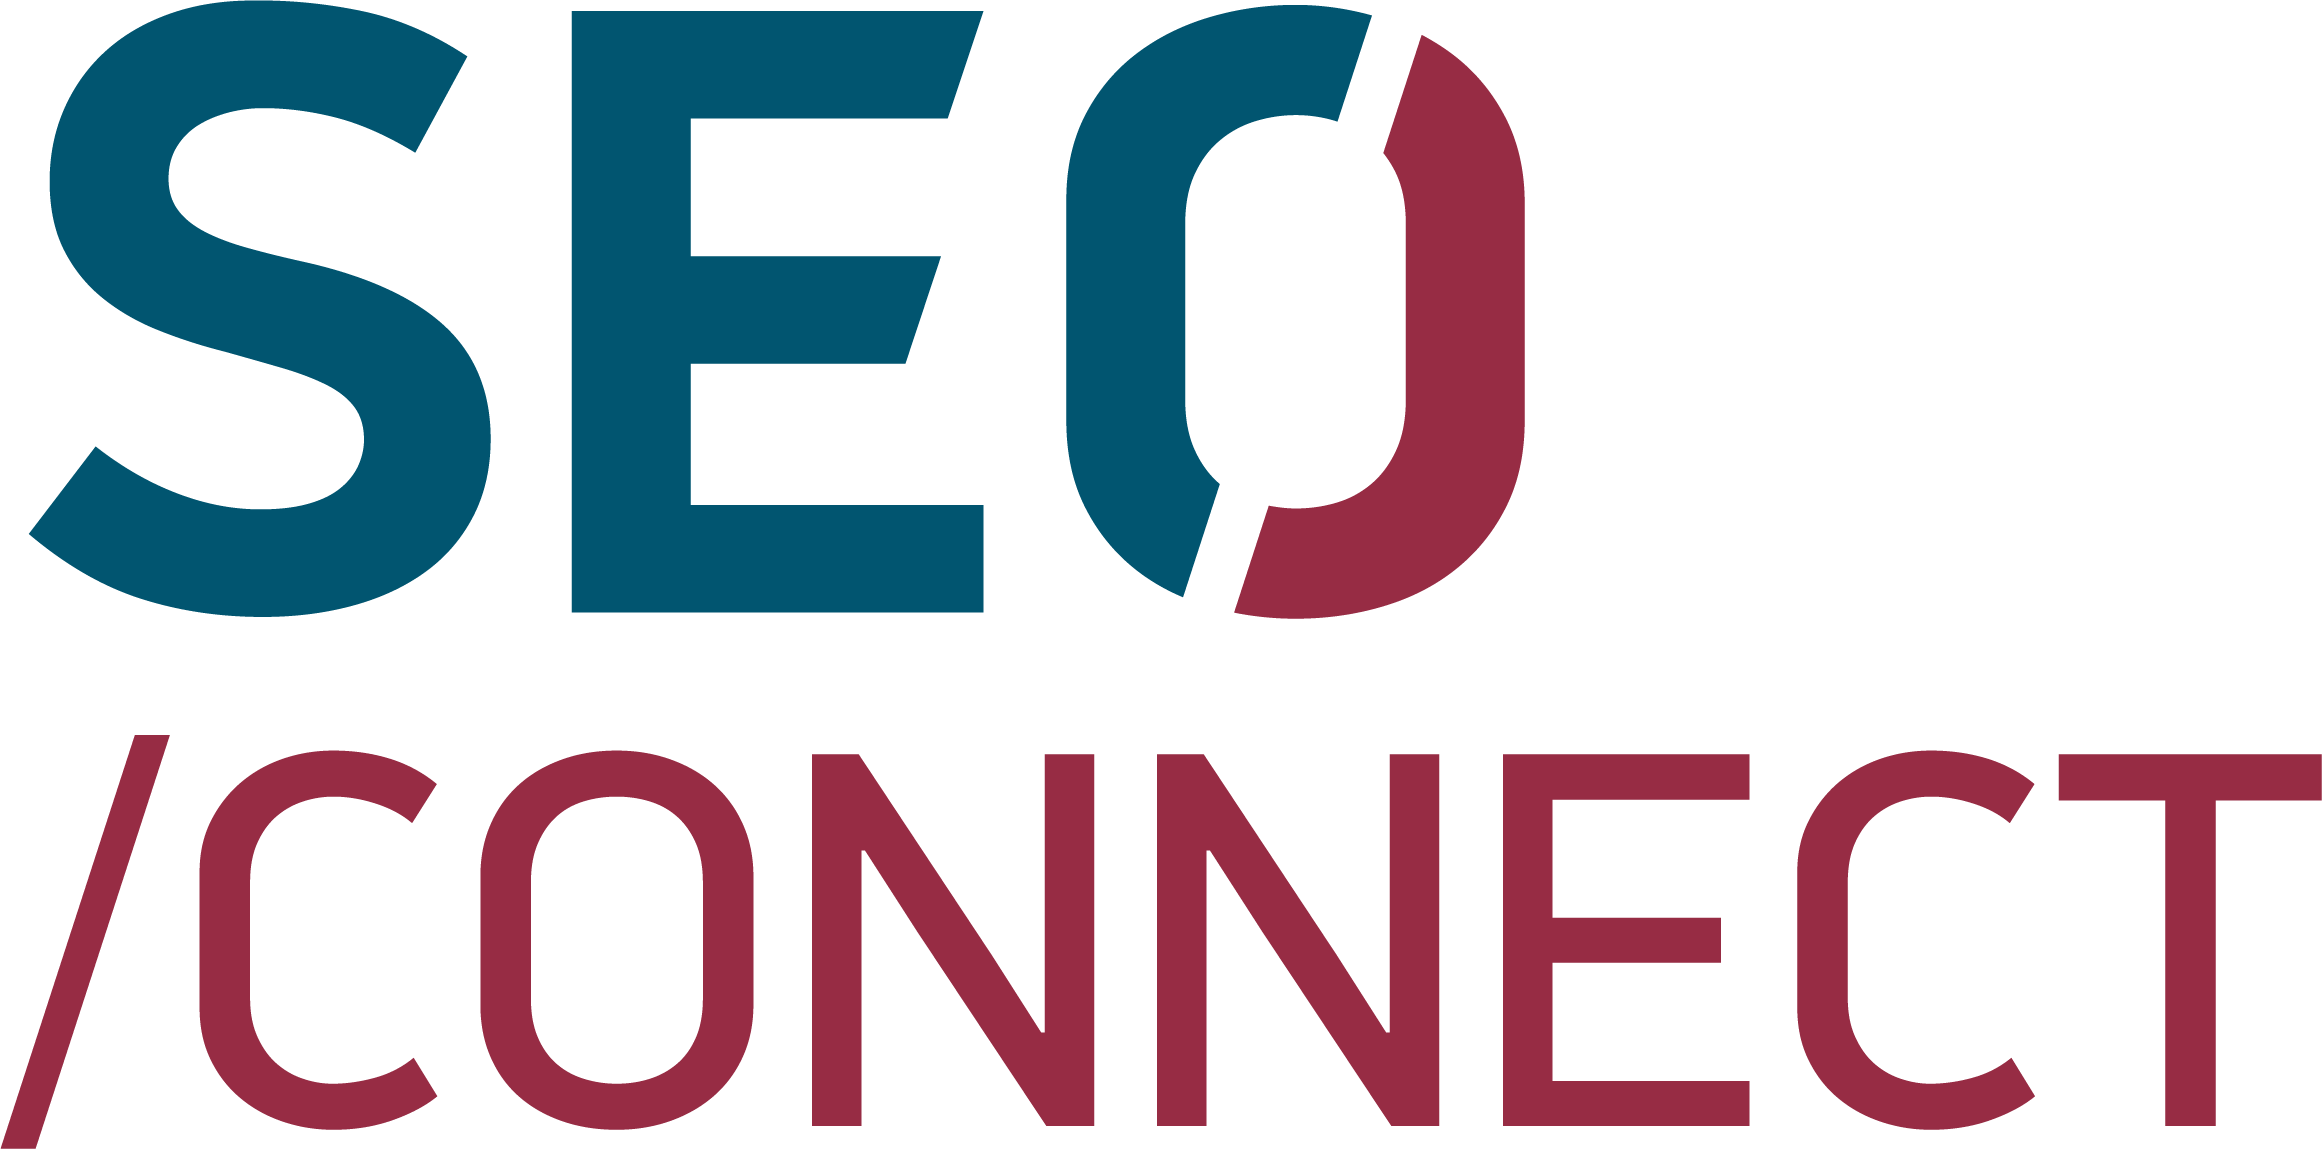 SEO Connect logo image